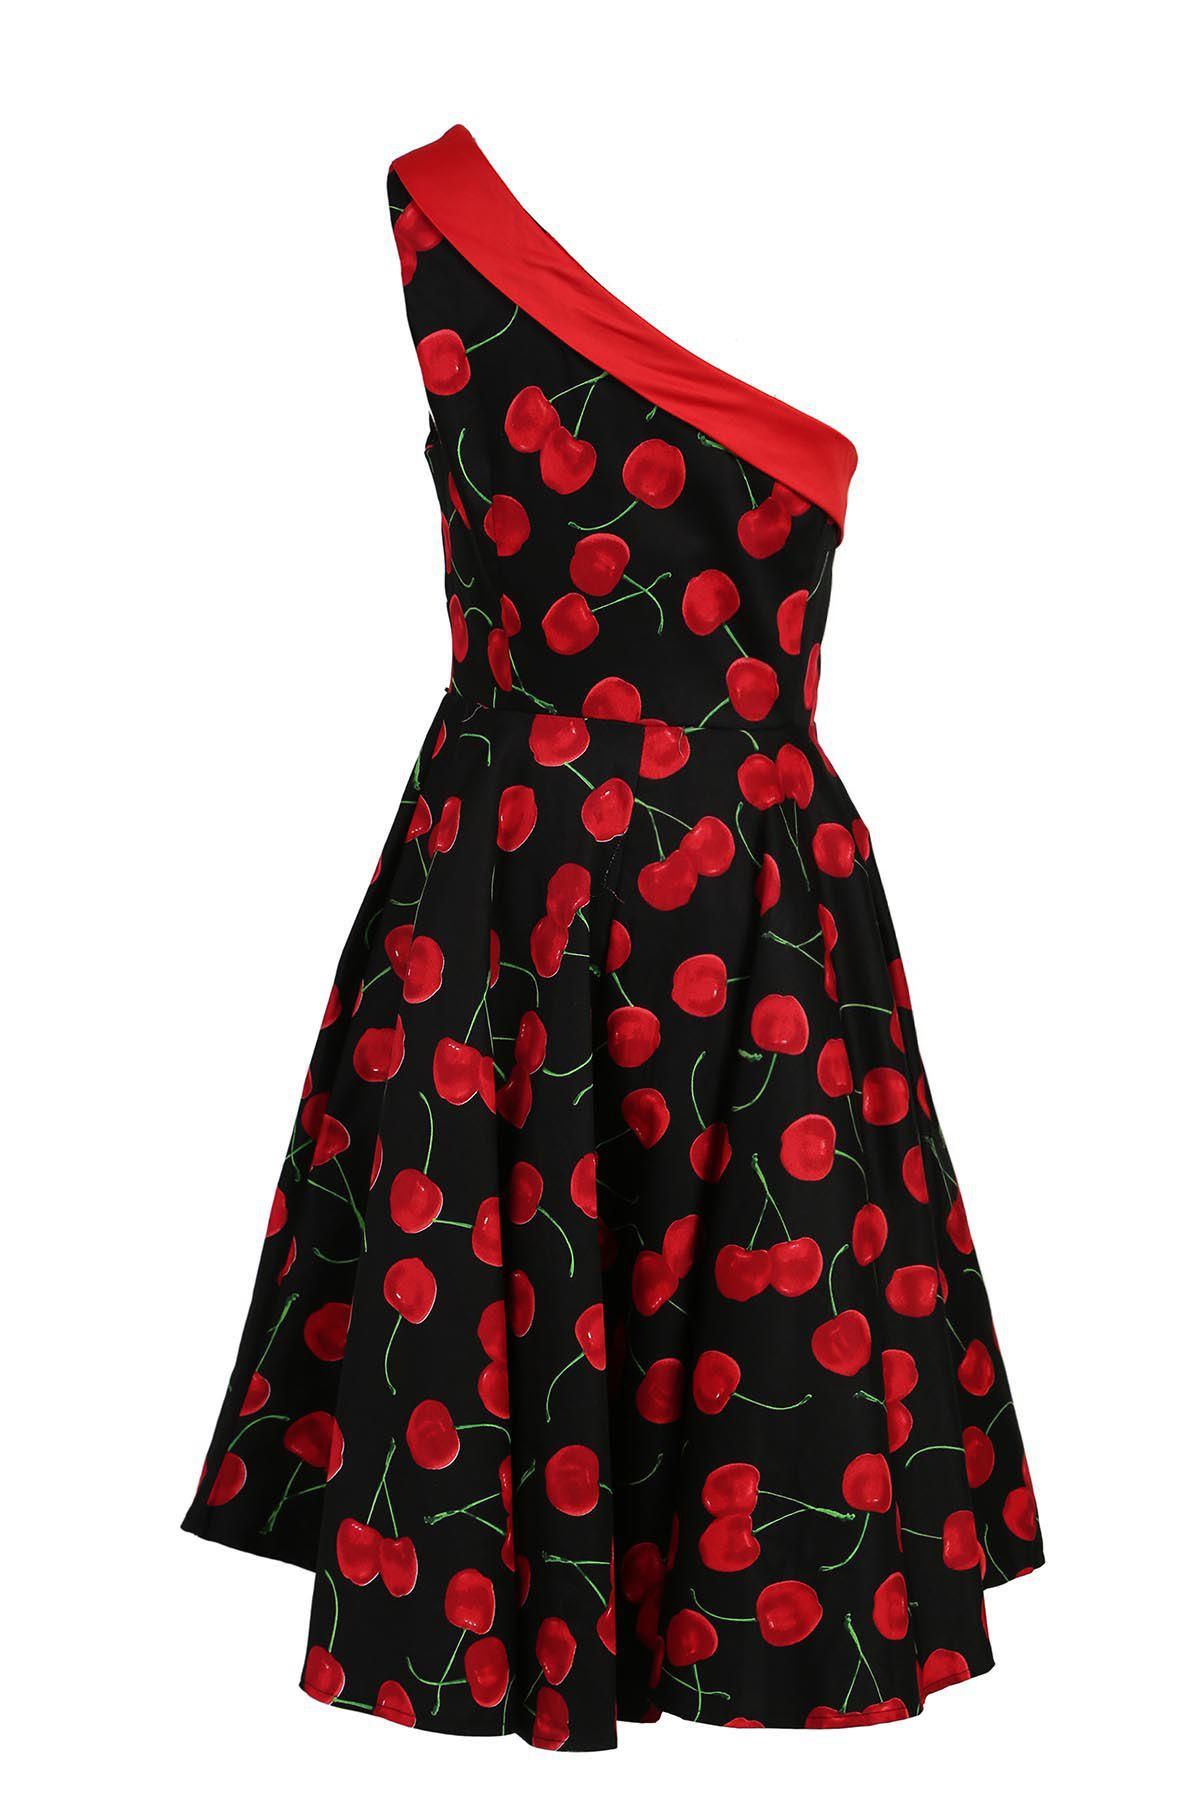 Vintage One-Shoulder Sleeveless Cherry Printed Women's Flare Dress - CERISE M